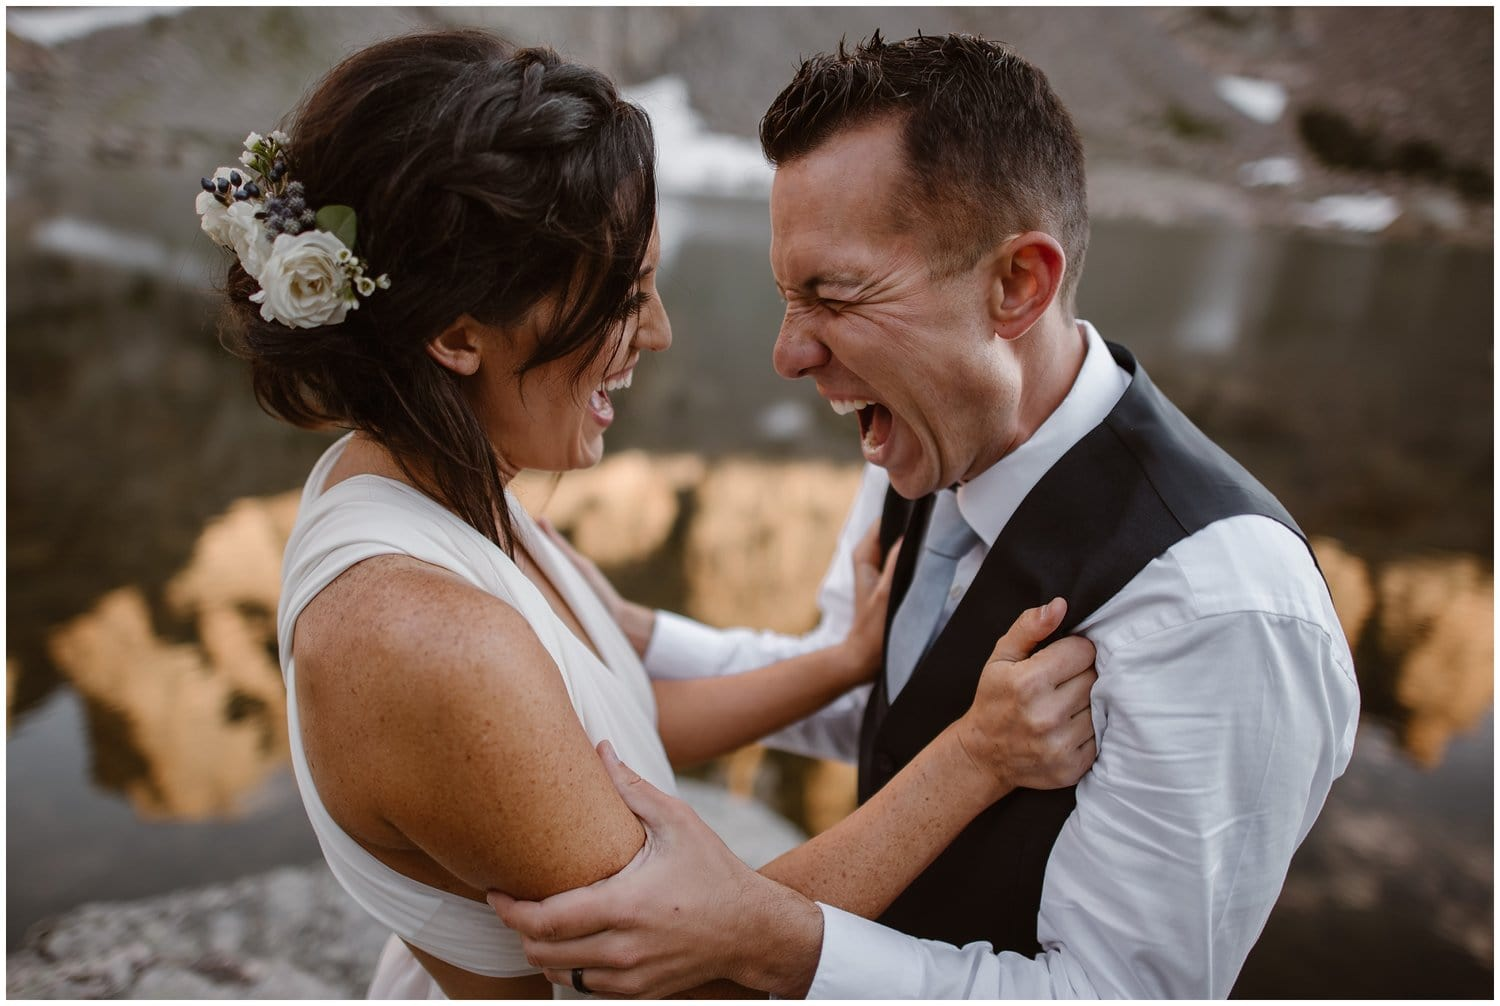 Close-up of bride and groom laughing during their elopement ceremony.